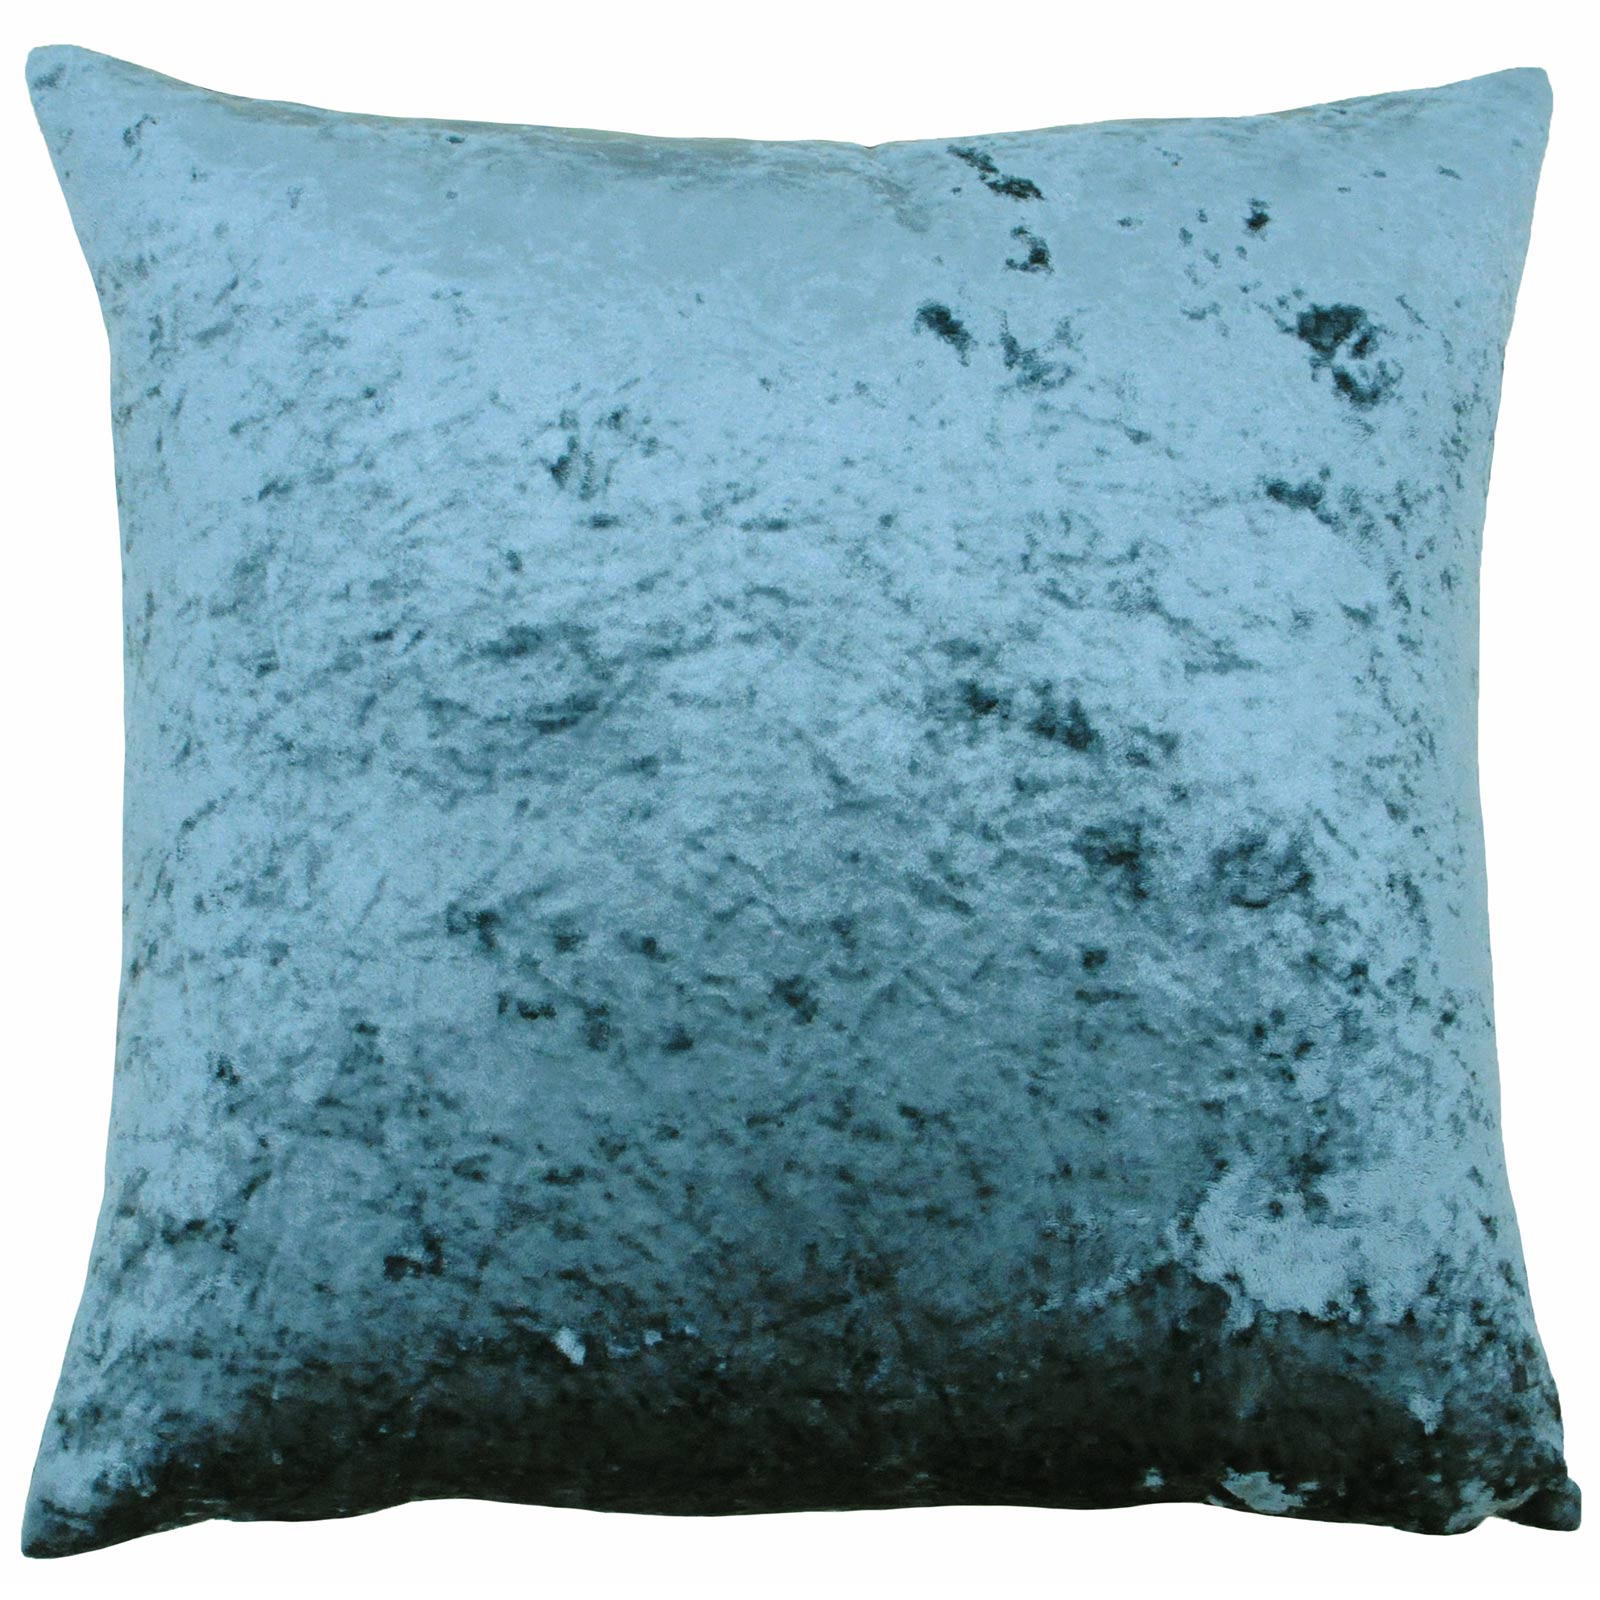 Verona Crushed Velvet Teal Filled Cushions 22'' x 22'' - Polyester Pad - Ideal Textiles